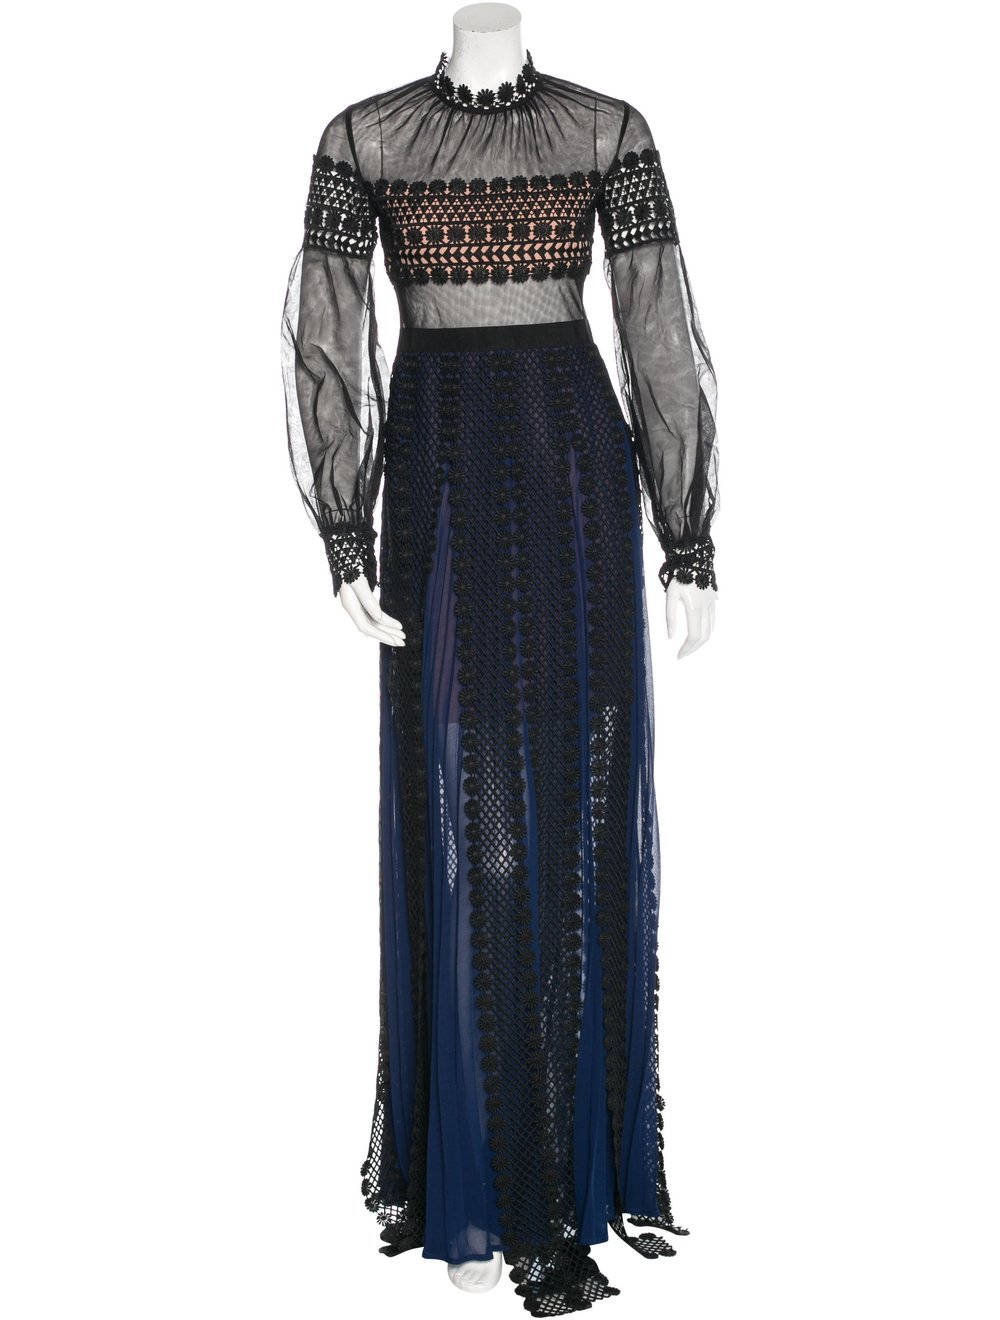 SELF-PORTRAIT PLEATED LACE-ACCENTED DRESS; Size: S, US4, UK8; $595.00